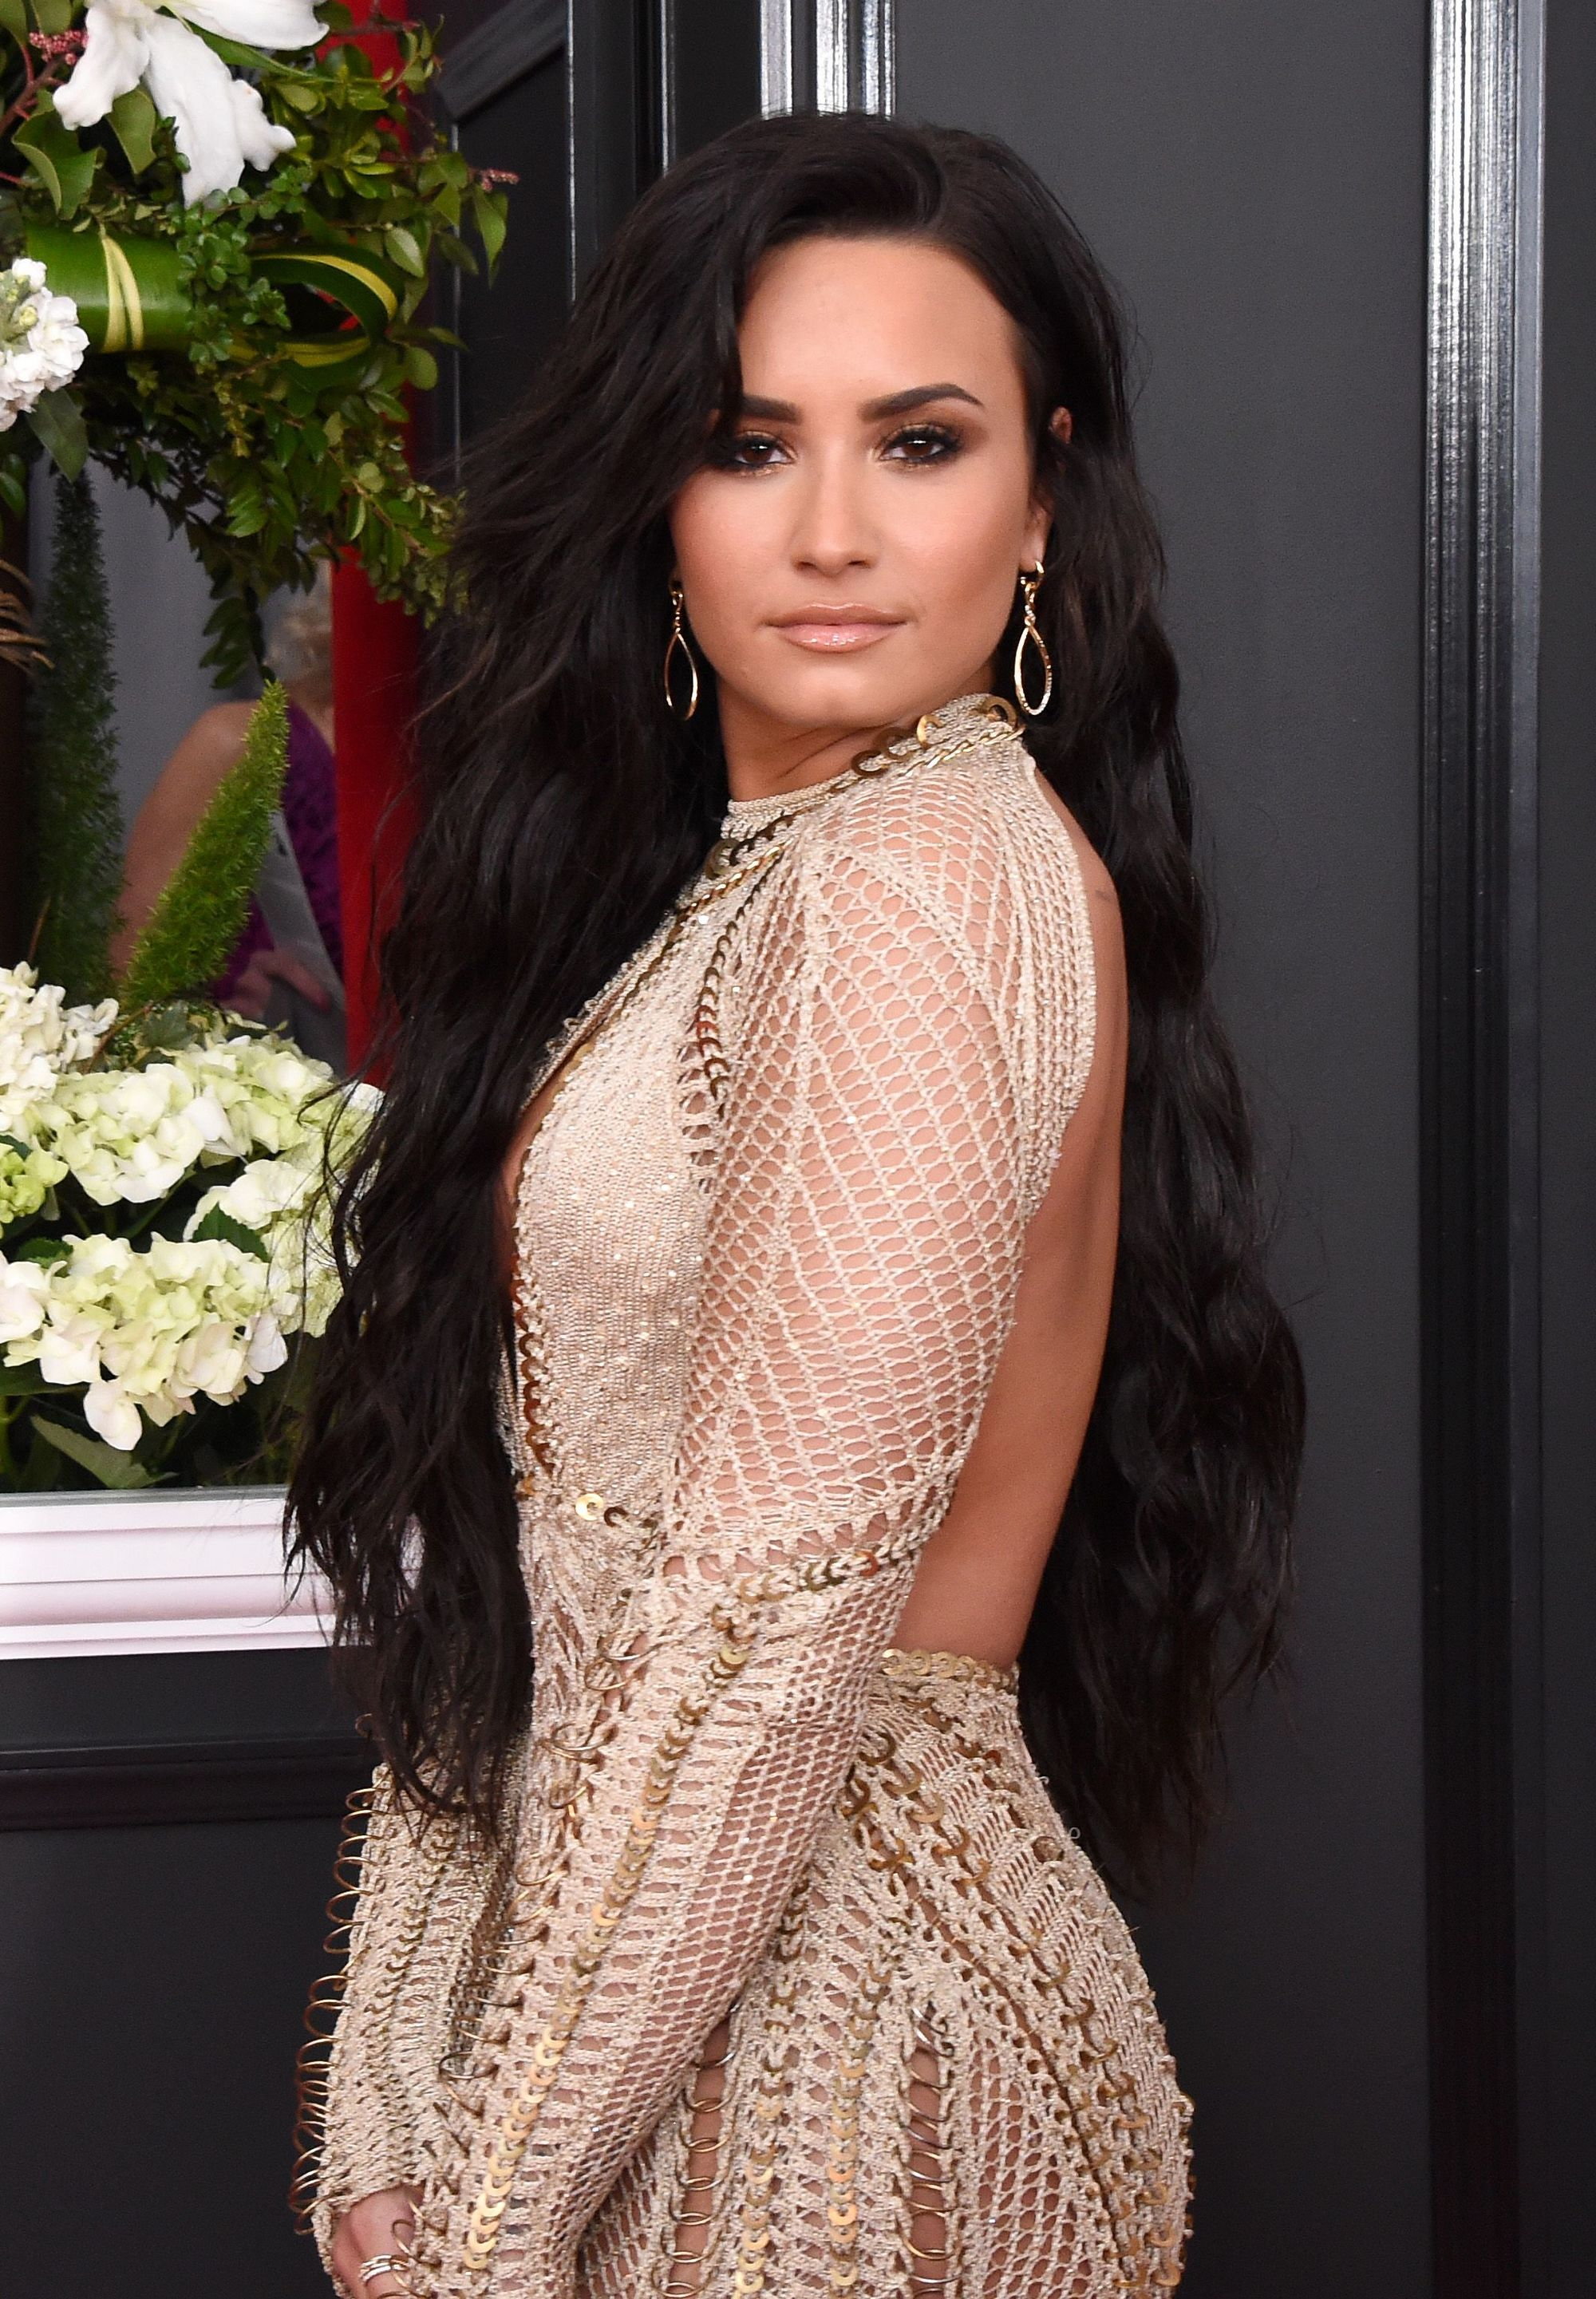 demi lovato on the red carpet in a cut out dress with very long dark hair